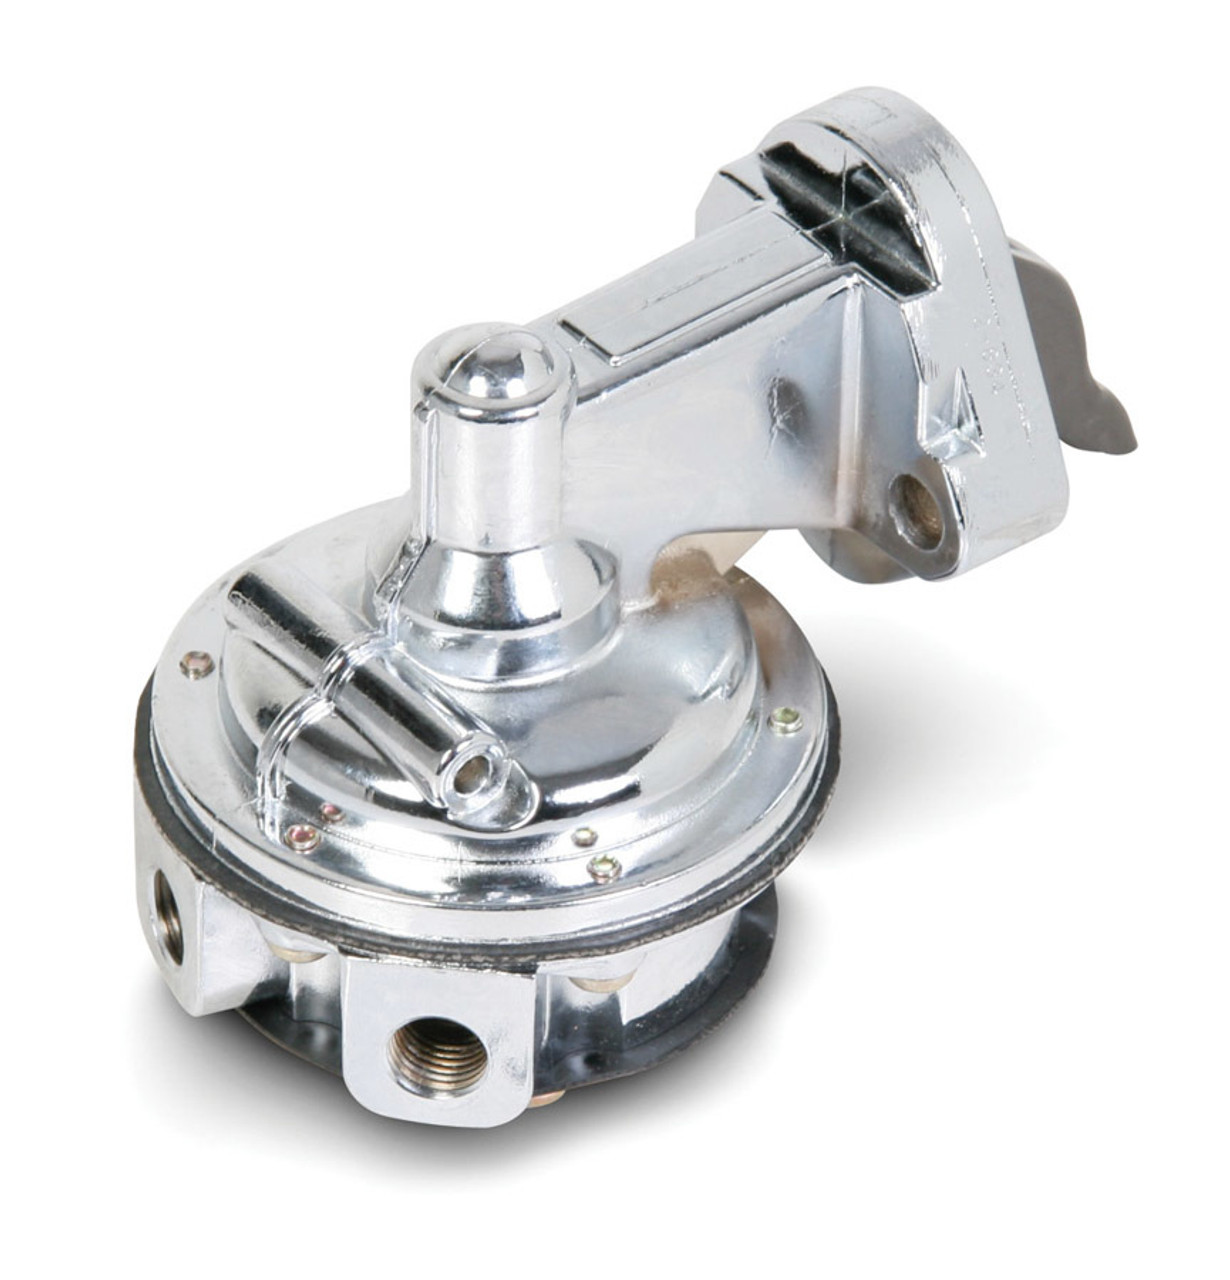 Holley 12-834 Fuel Pump, Mechanical, 80 gph, 7.8 psi, 1/4 in NPT Female Inlet / Outlet, Aluminum, Polished, Gas, Small Block Chevy,